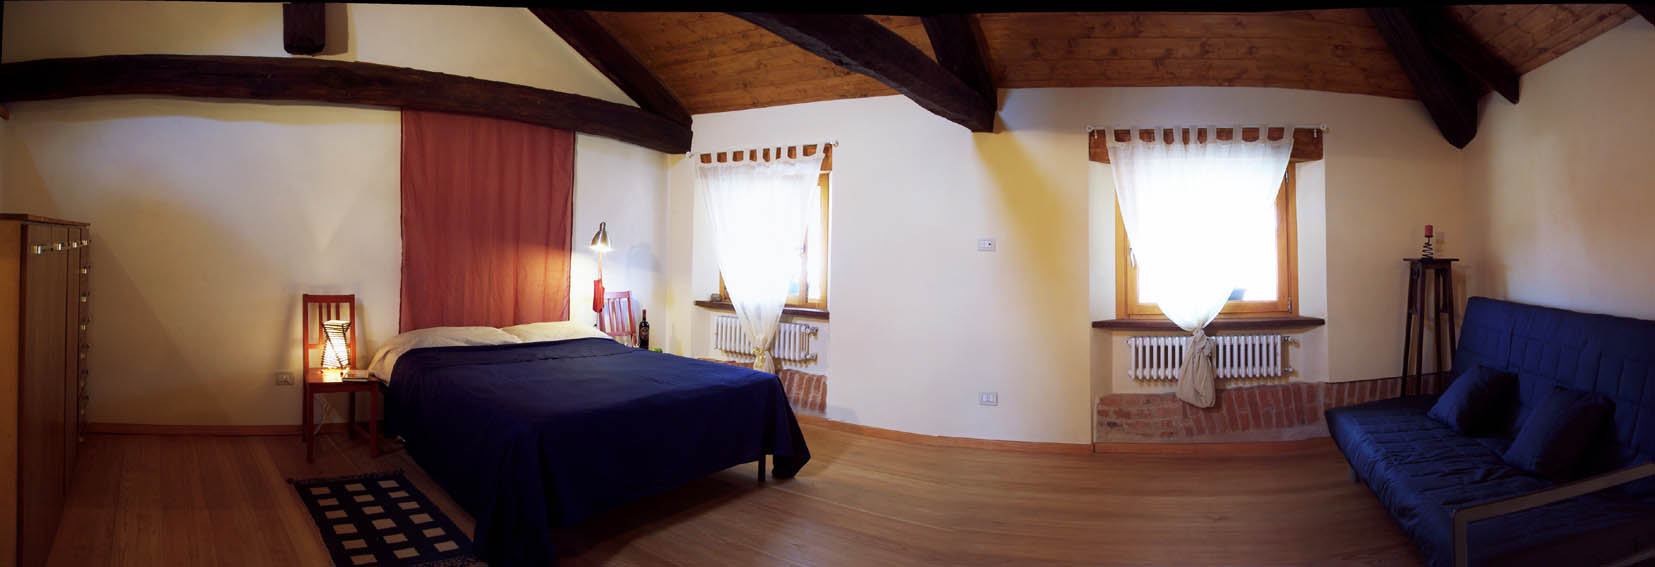 Casa Prosit, Asti, Italy, open air bnb and hotels in Asti